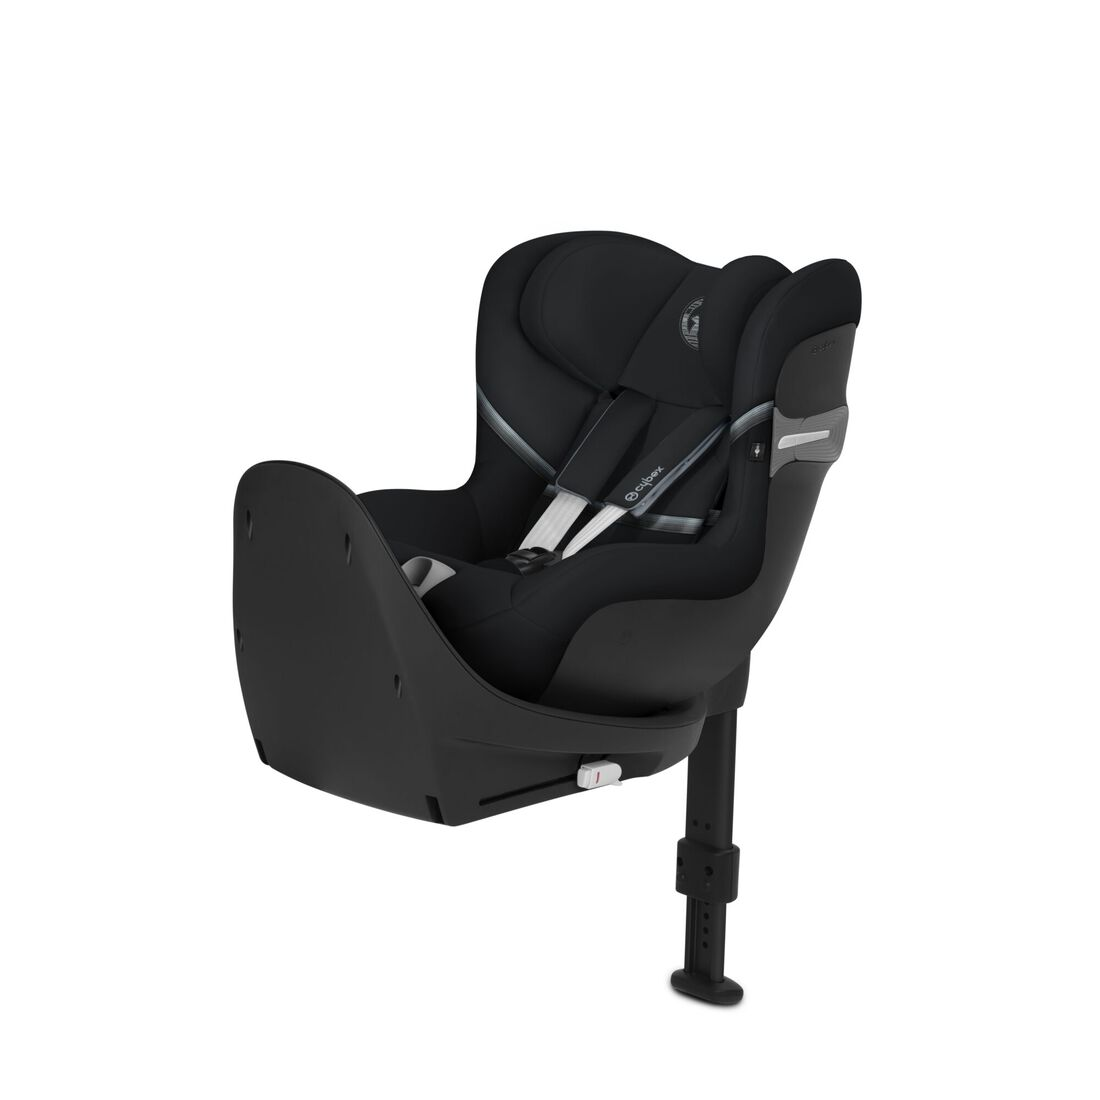 CYBEX Sirona SX2 i-Size - Deep Black in Deep Black large image number 1